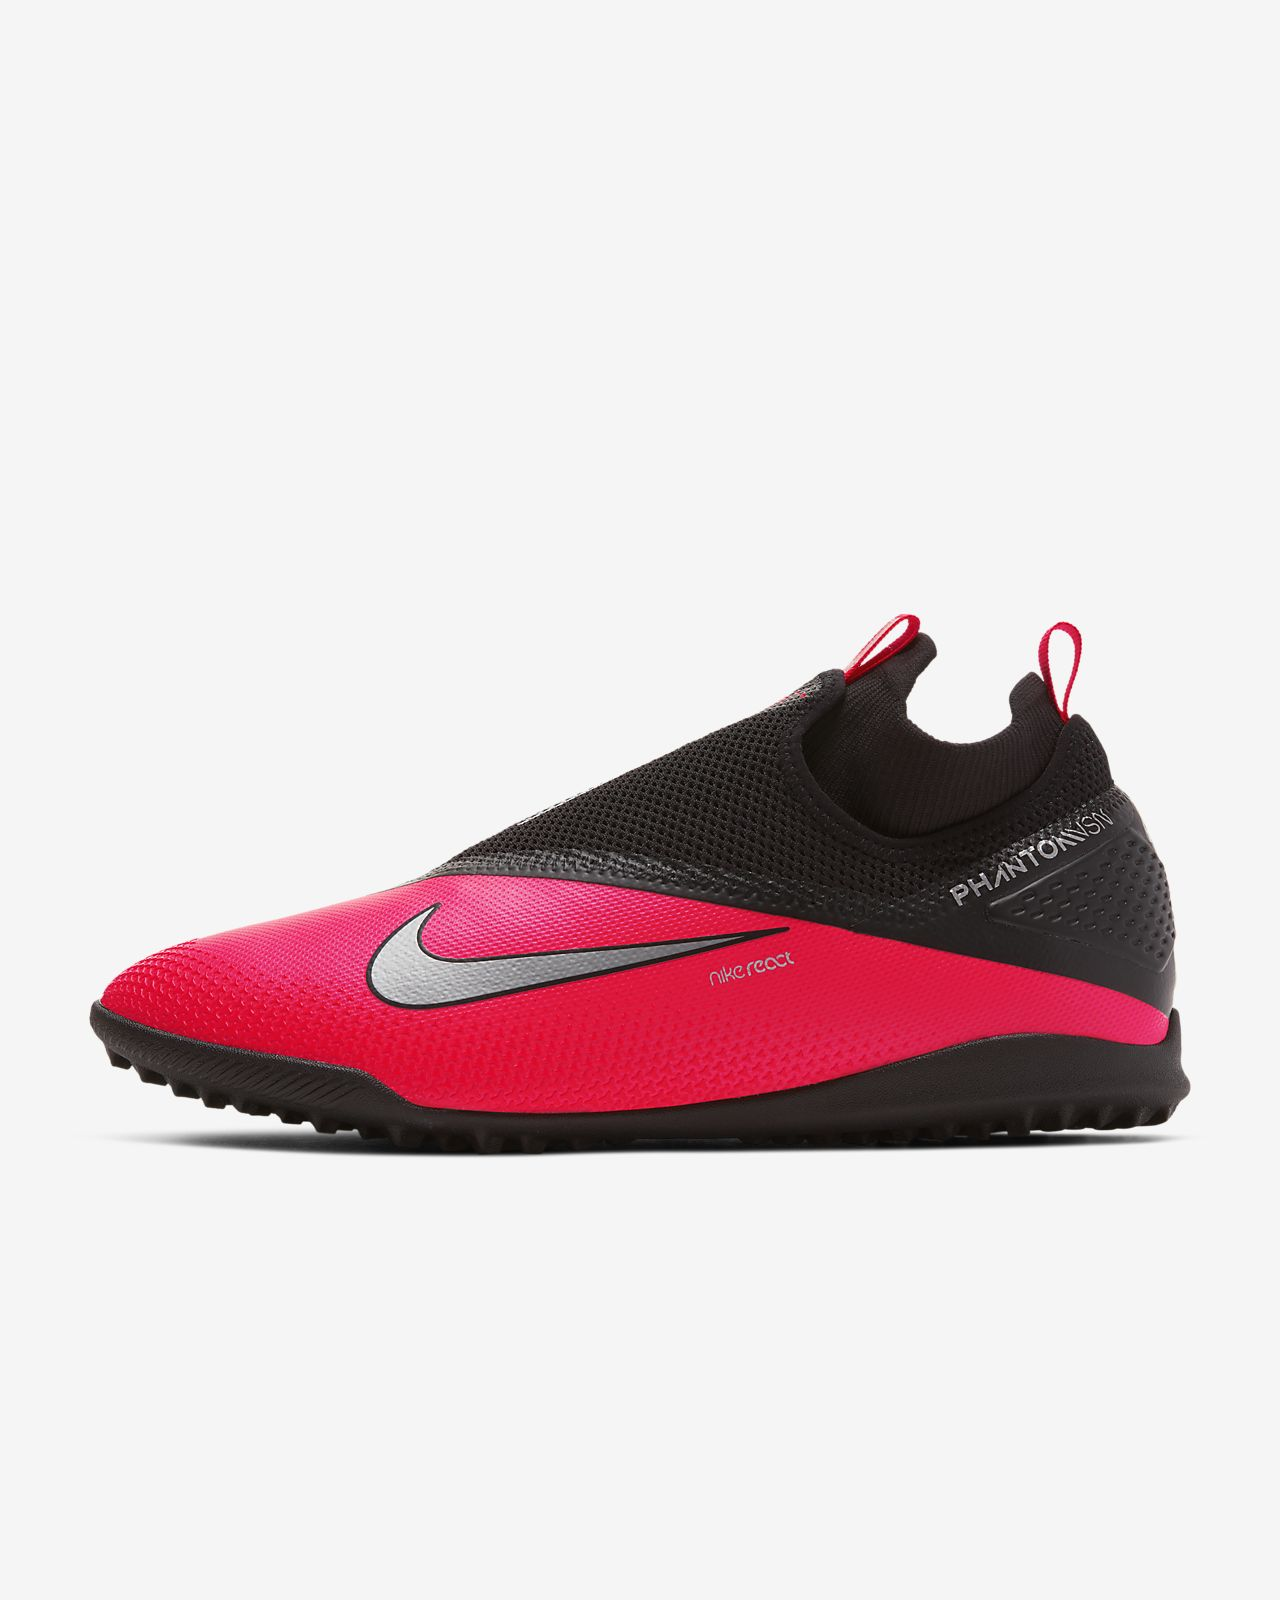 Chaussure de football pour surface synthétique Nike React Phantom Vision 2 Pro Dynamic Fit TF